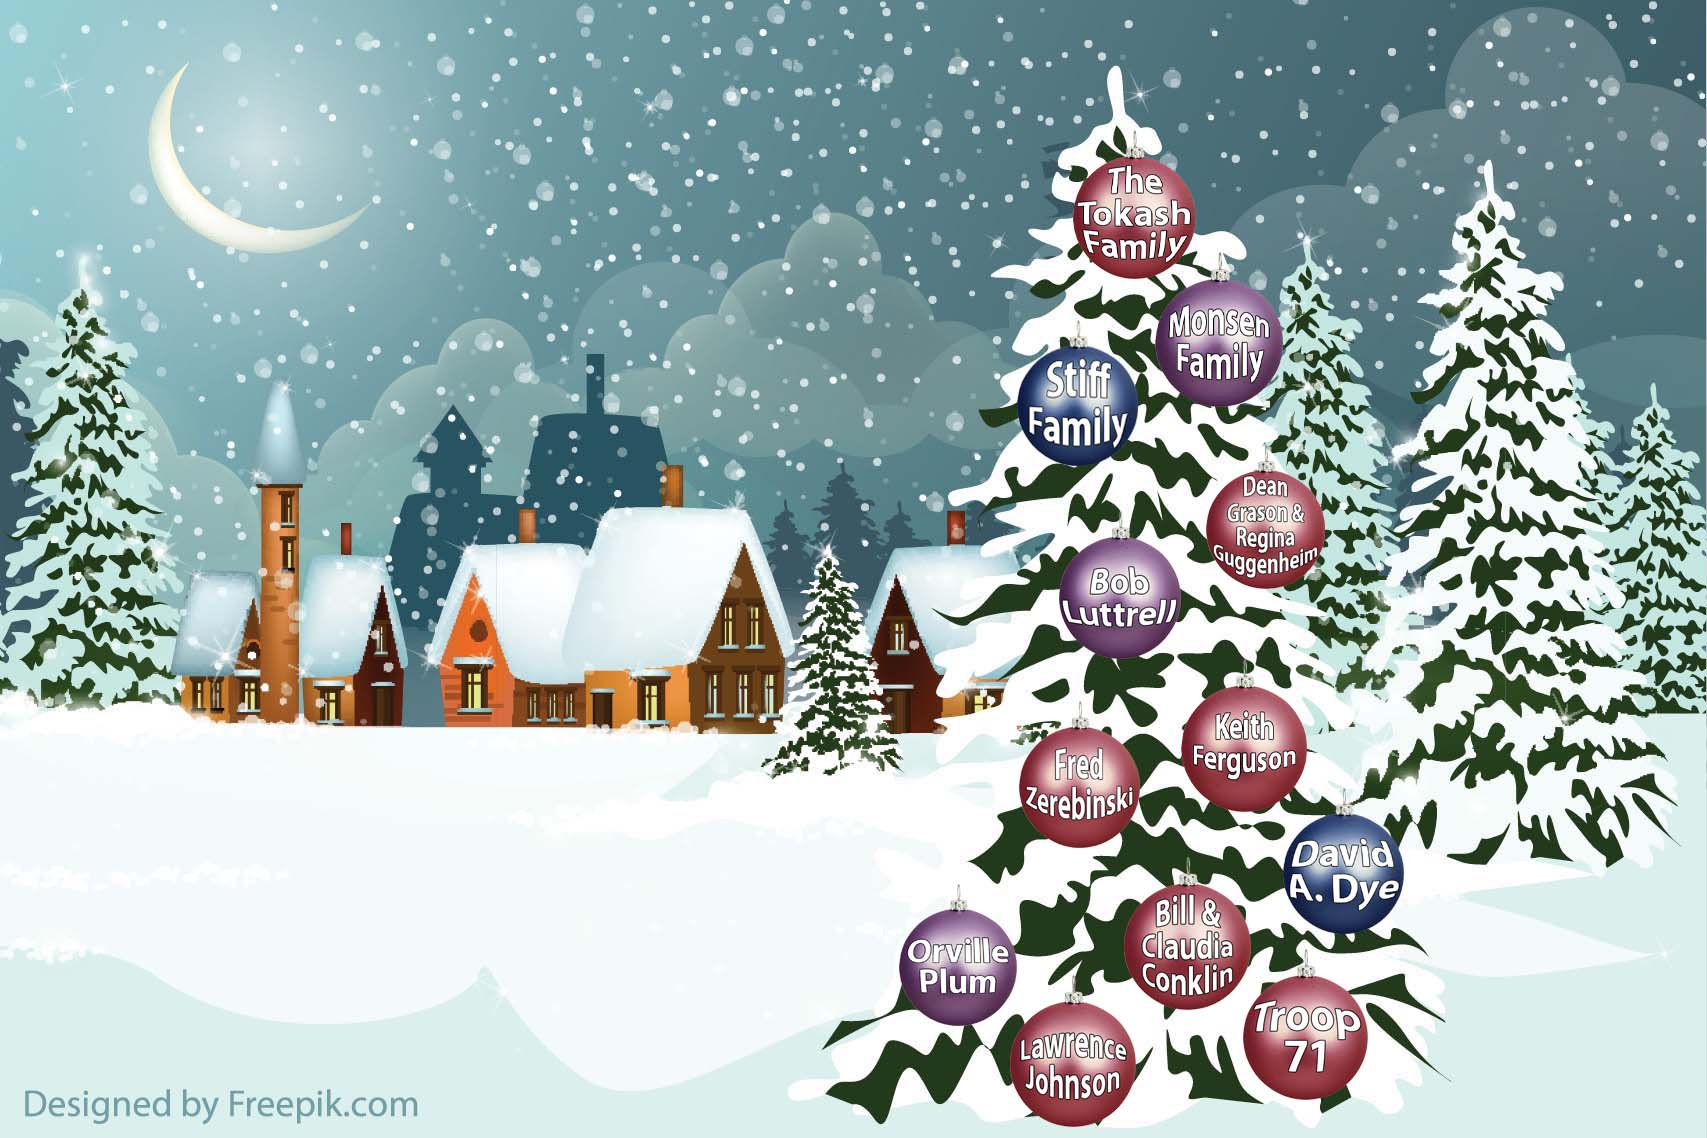 Snowy night scene with cabins, trees, ornaments